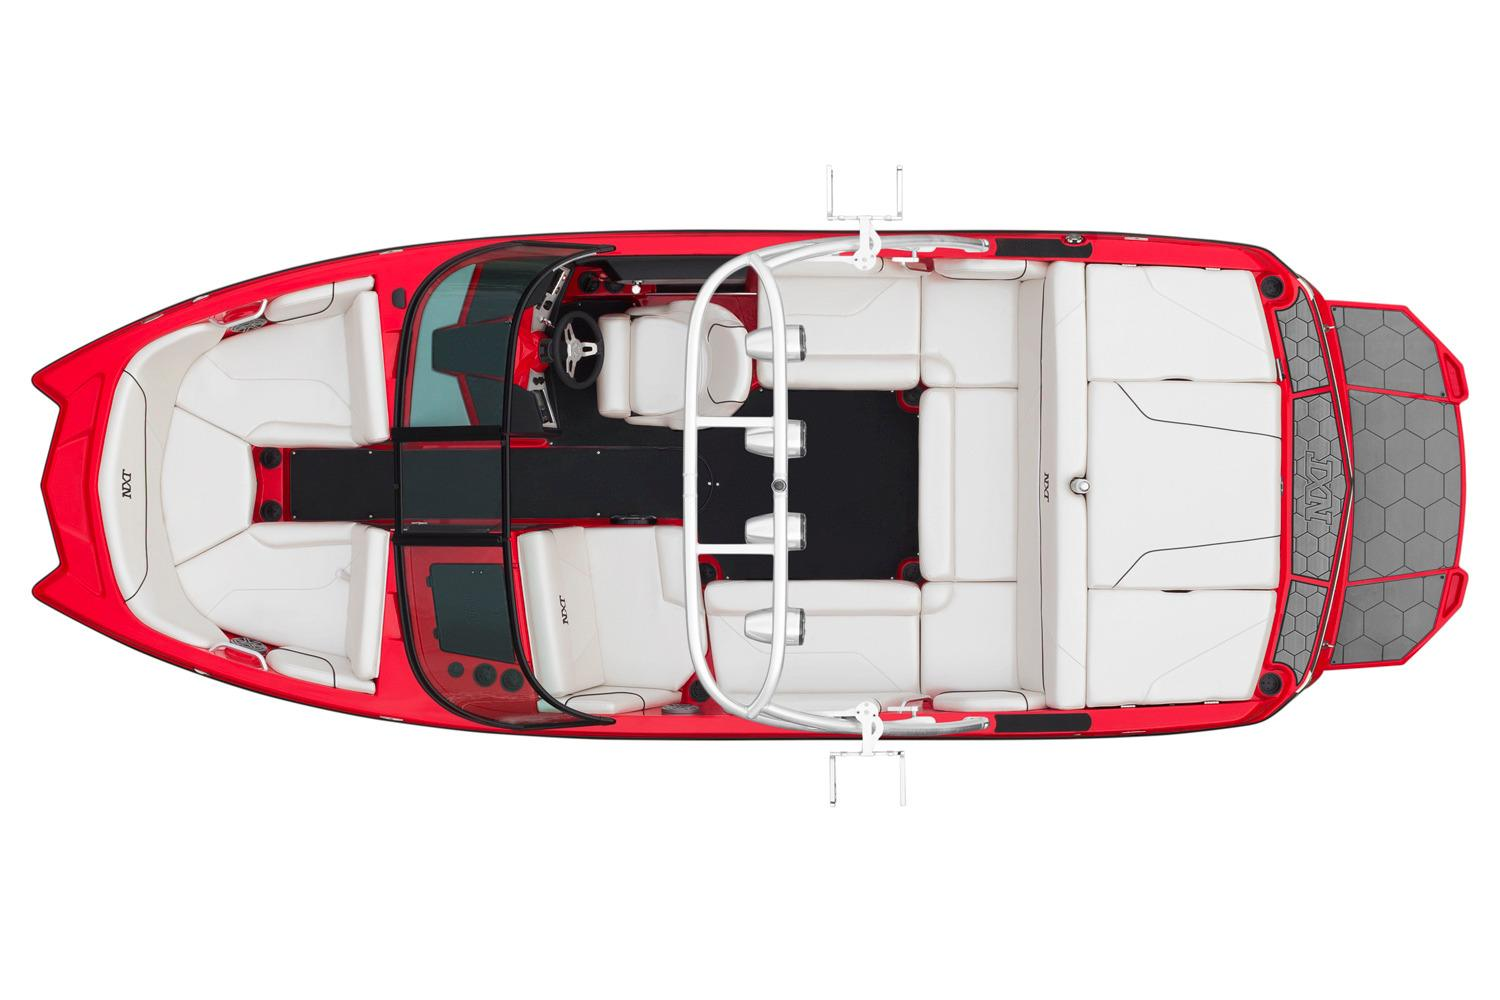 2016 Mastercraft NXT20 in Lake Zurich, Illinois